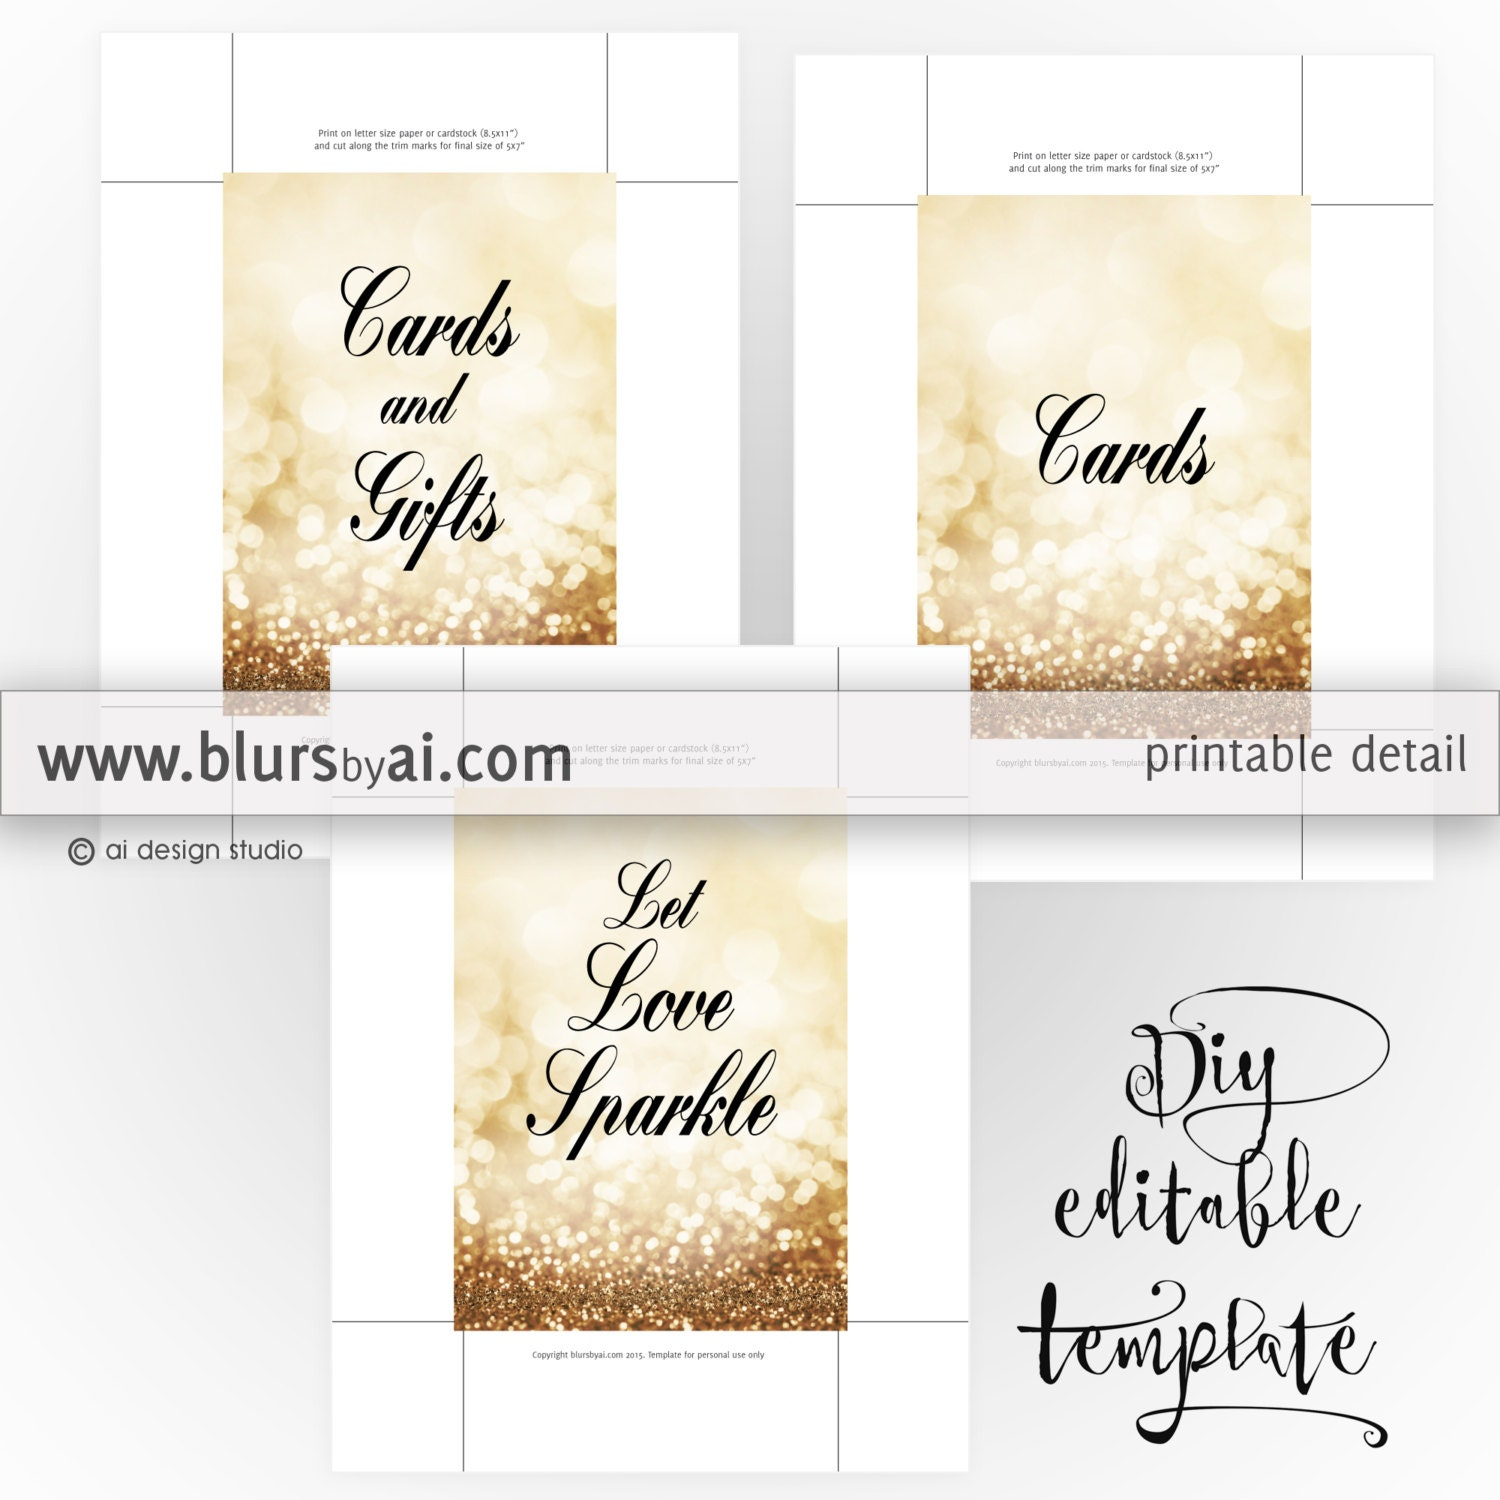 Gold color cardstock paper 5x7 - This Is A Digital File